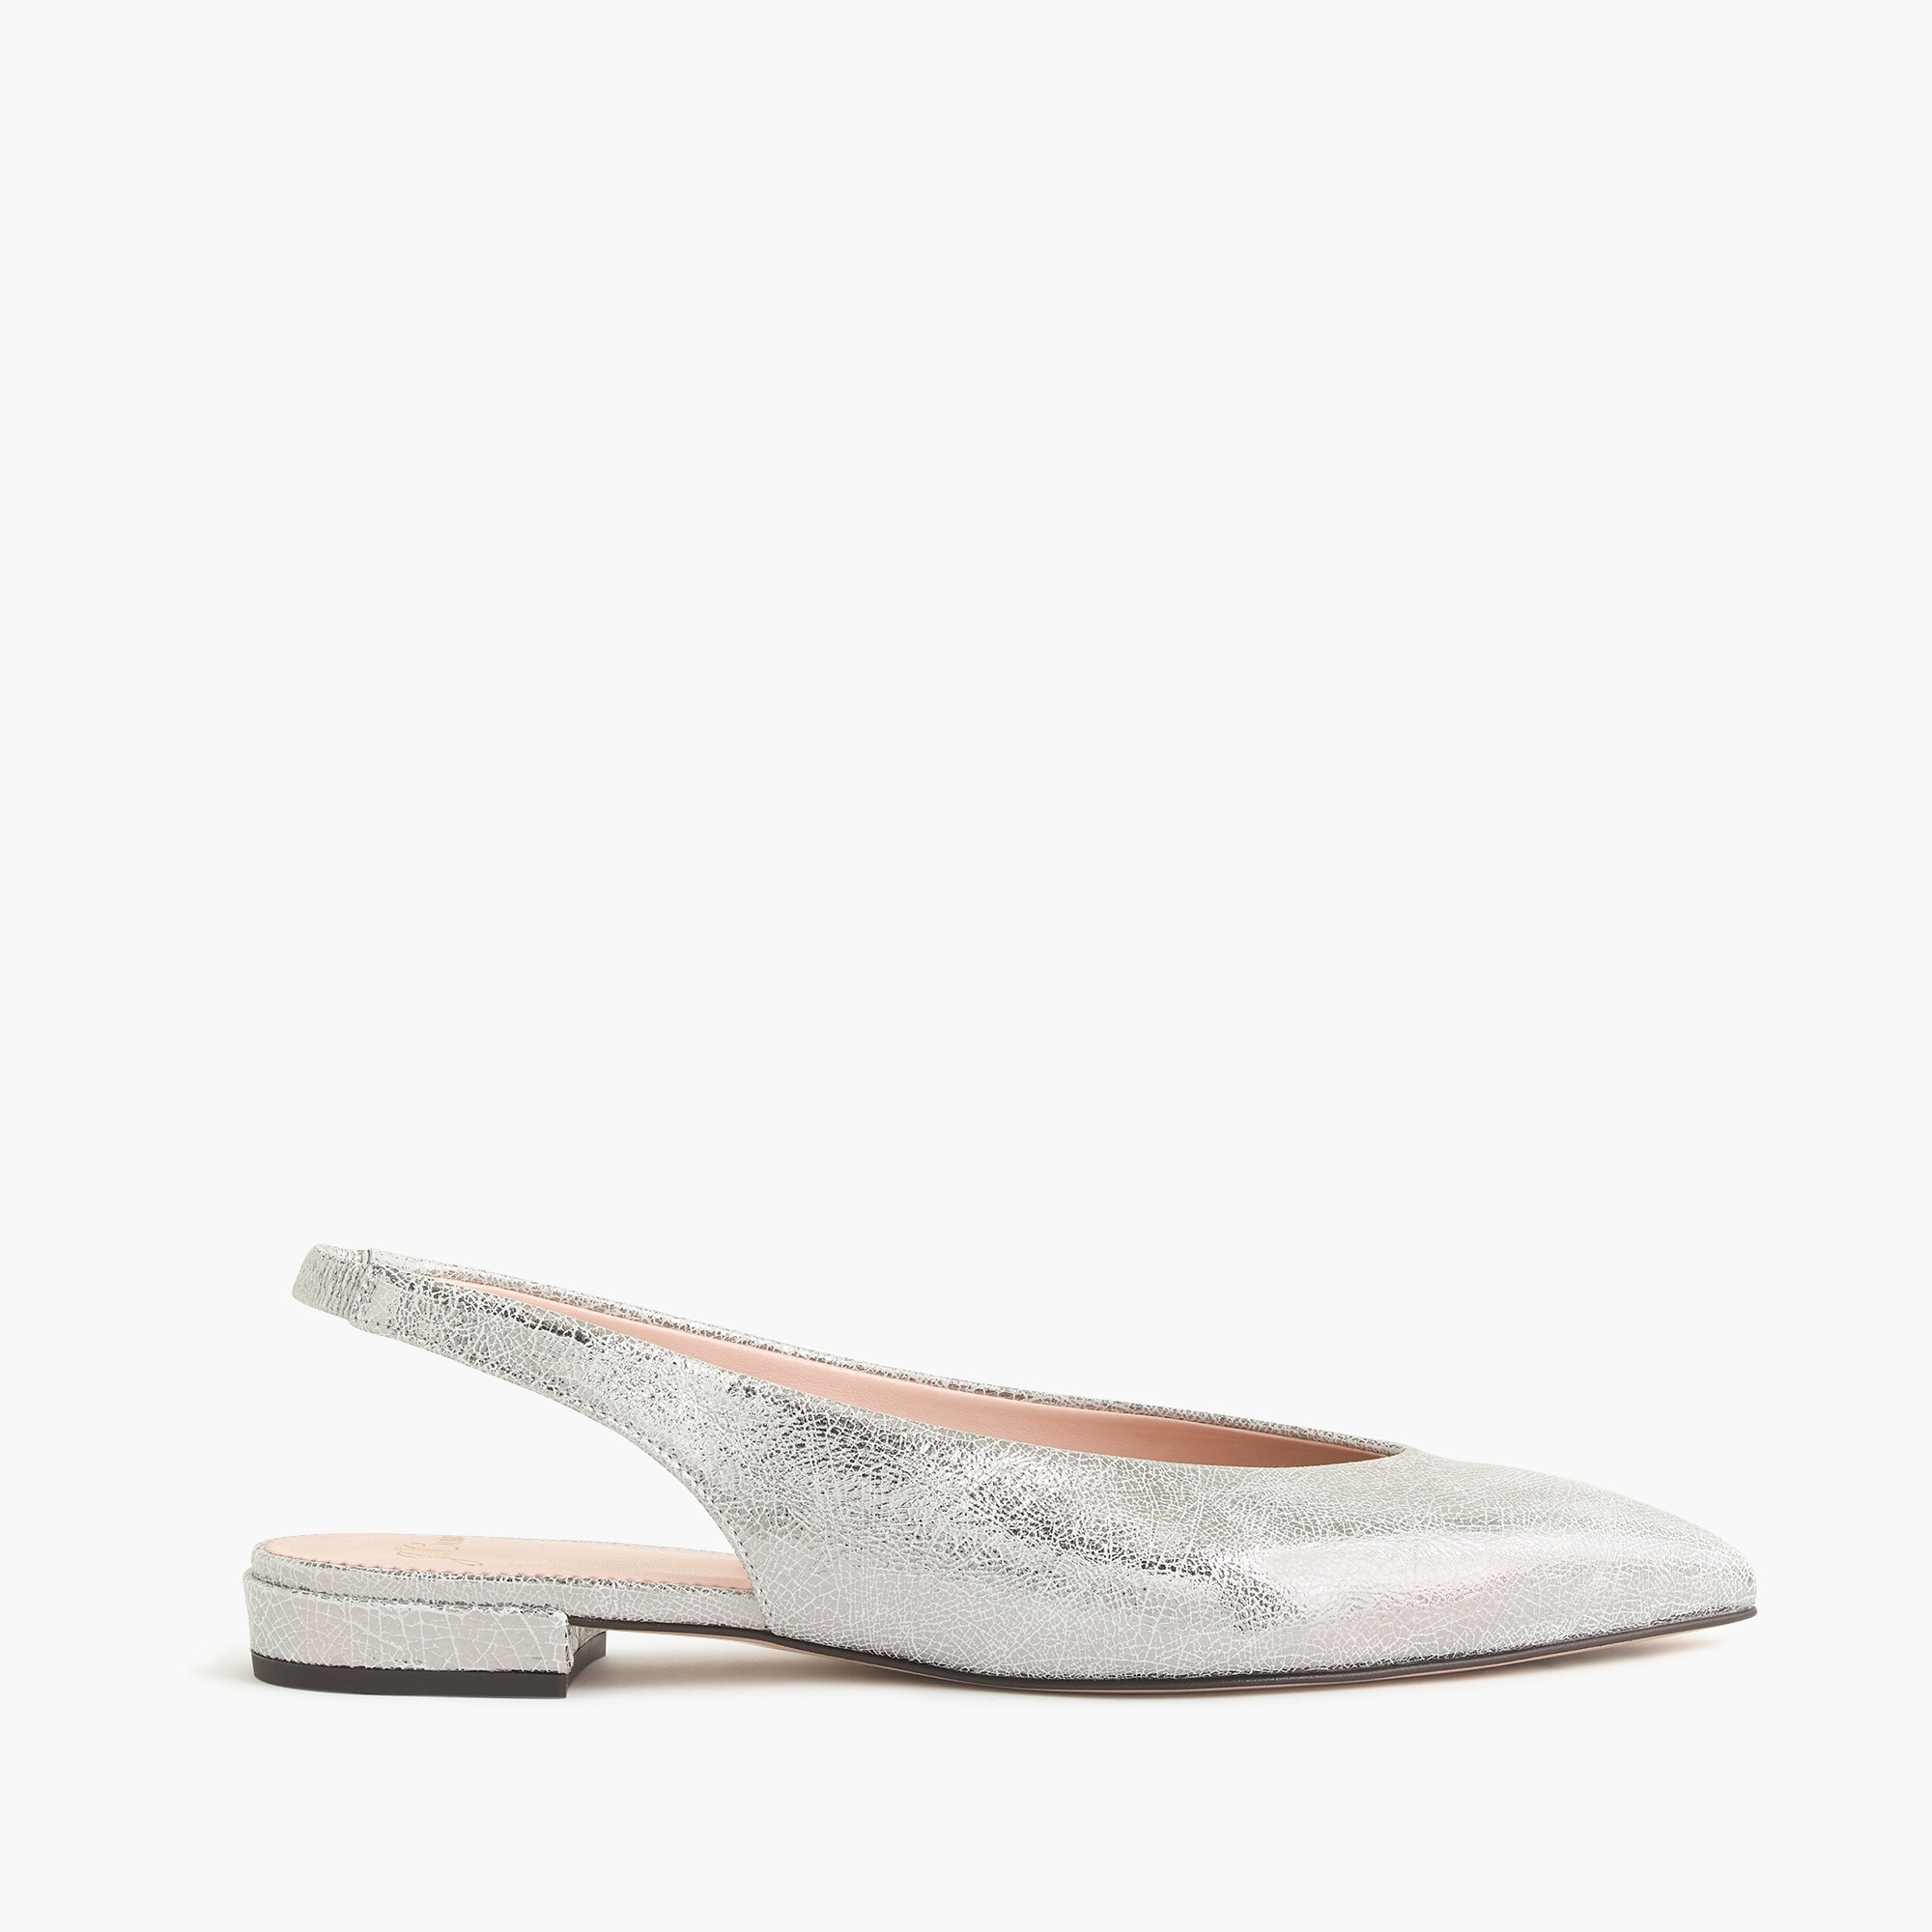 Pointed-toe slingback flats in metallic cracked-leather